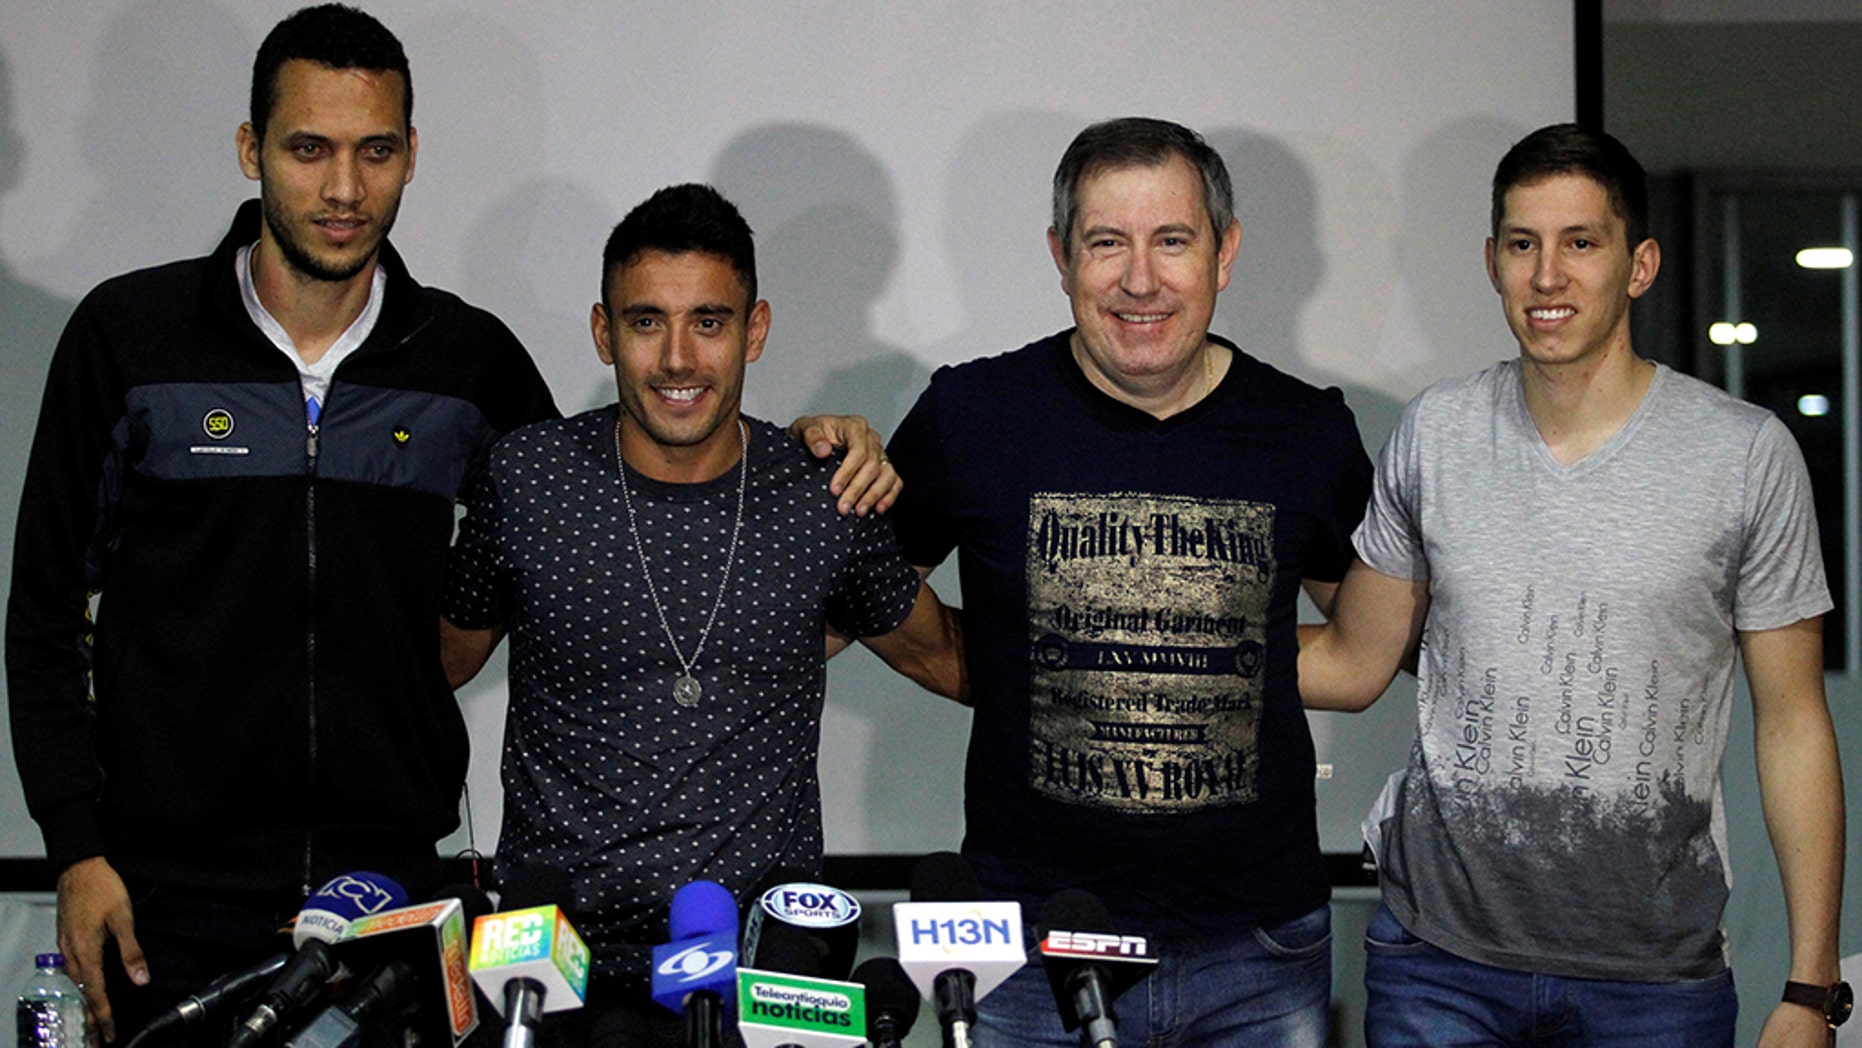 "Footballers of the Brazilian Chapecoense (L to R) Helio Neto, Alan Ruschel and Jakson Follman and survivor journalist Rafael Henzel, survivors of the team's plane crash, pose at their press conference on their arrival in Medellin, Colombia, on 8 May , 201<div class=""e3lan e3lan-in-post1""><script async src=""//pagead2.googlesyndication.com/pagead/js/adsbygoogle.js""></script>